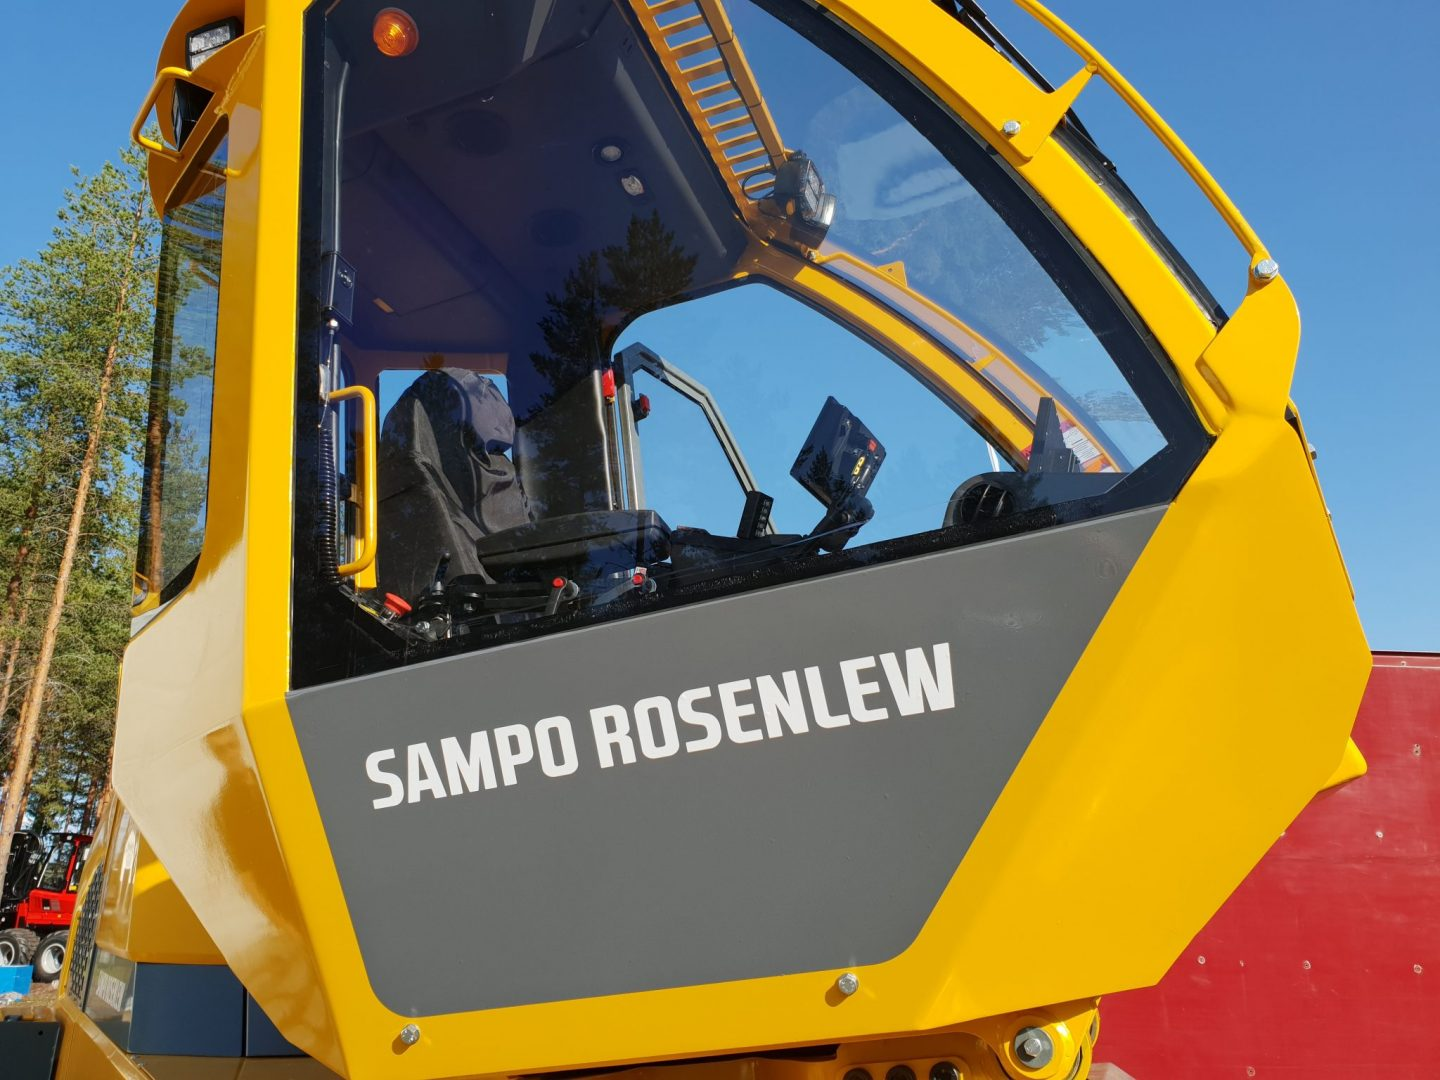 Sampo-Rosenlew appoints new CEO from forest machine company